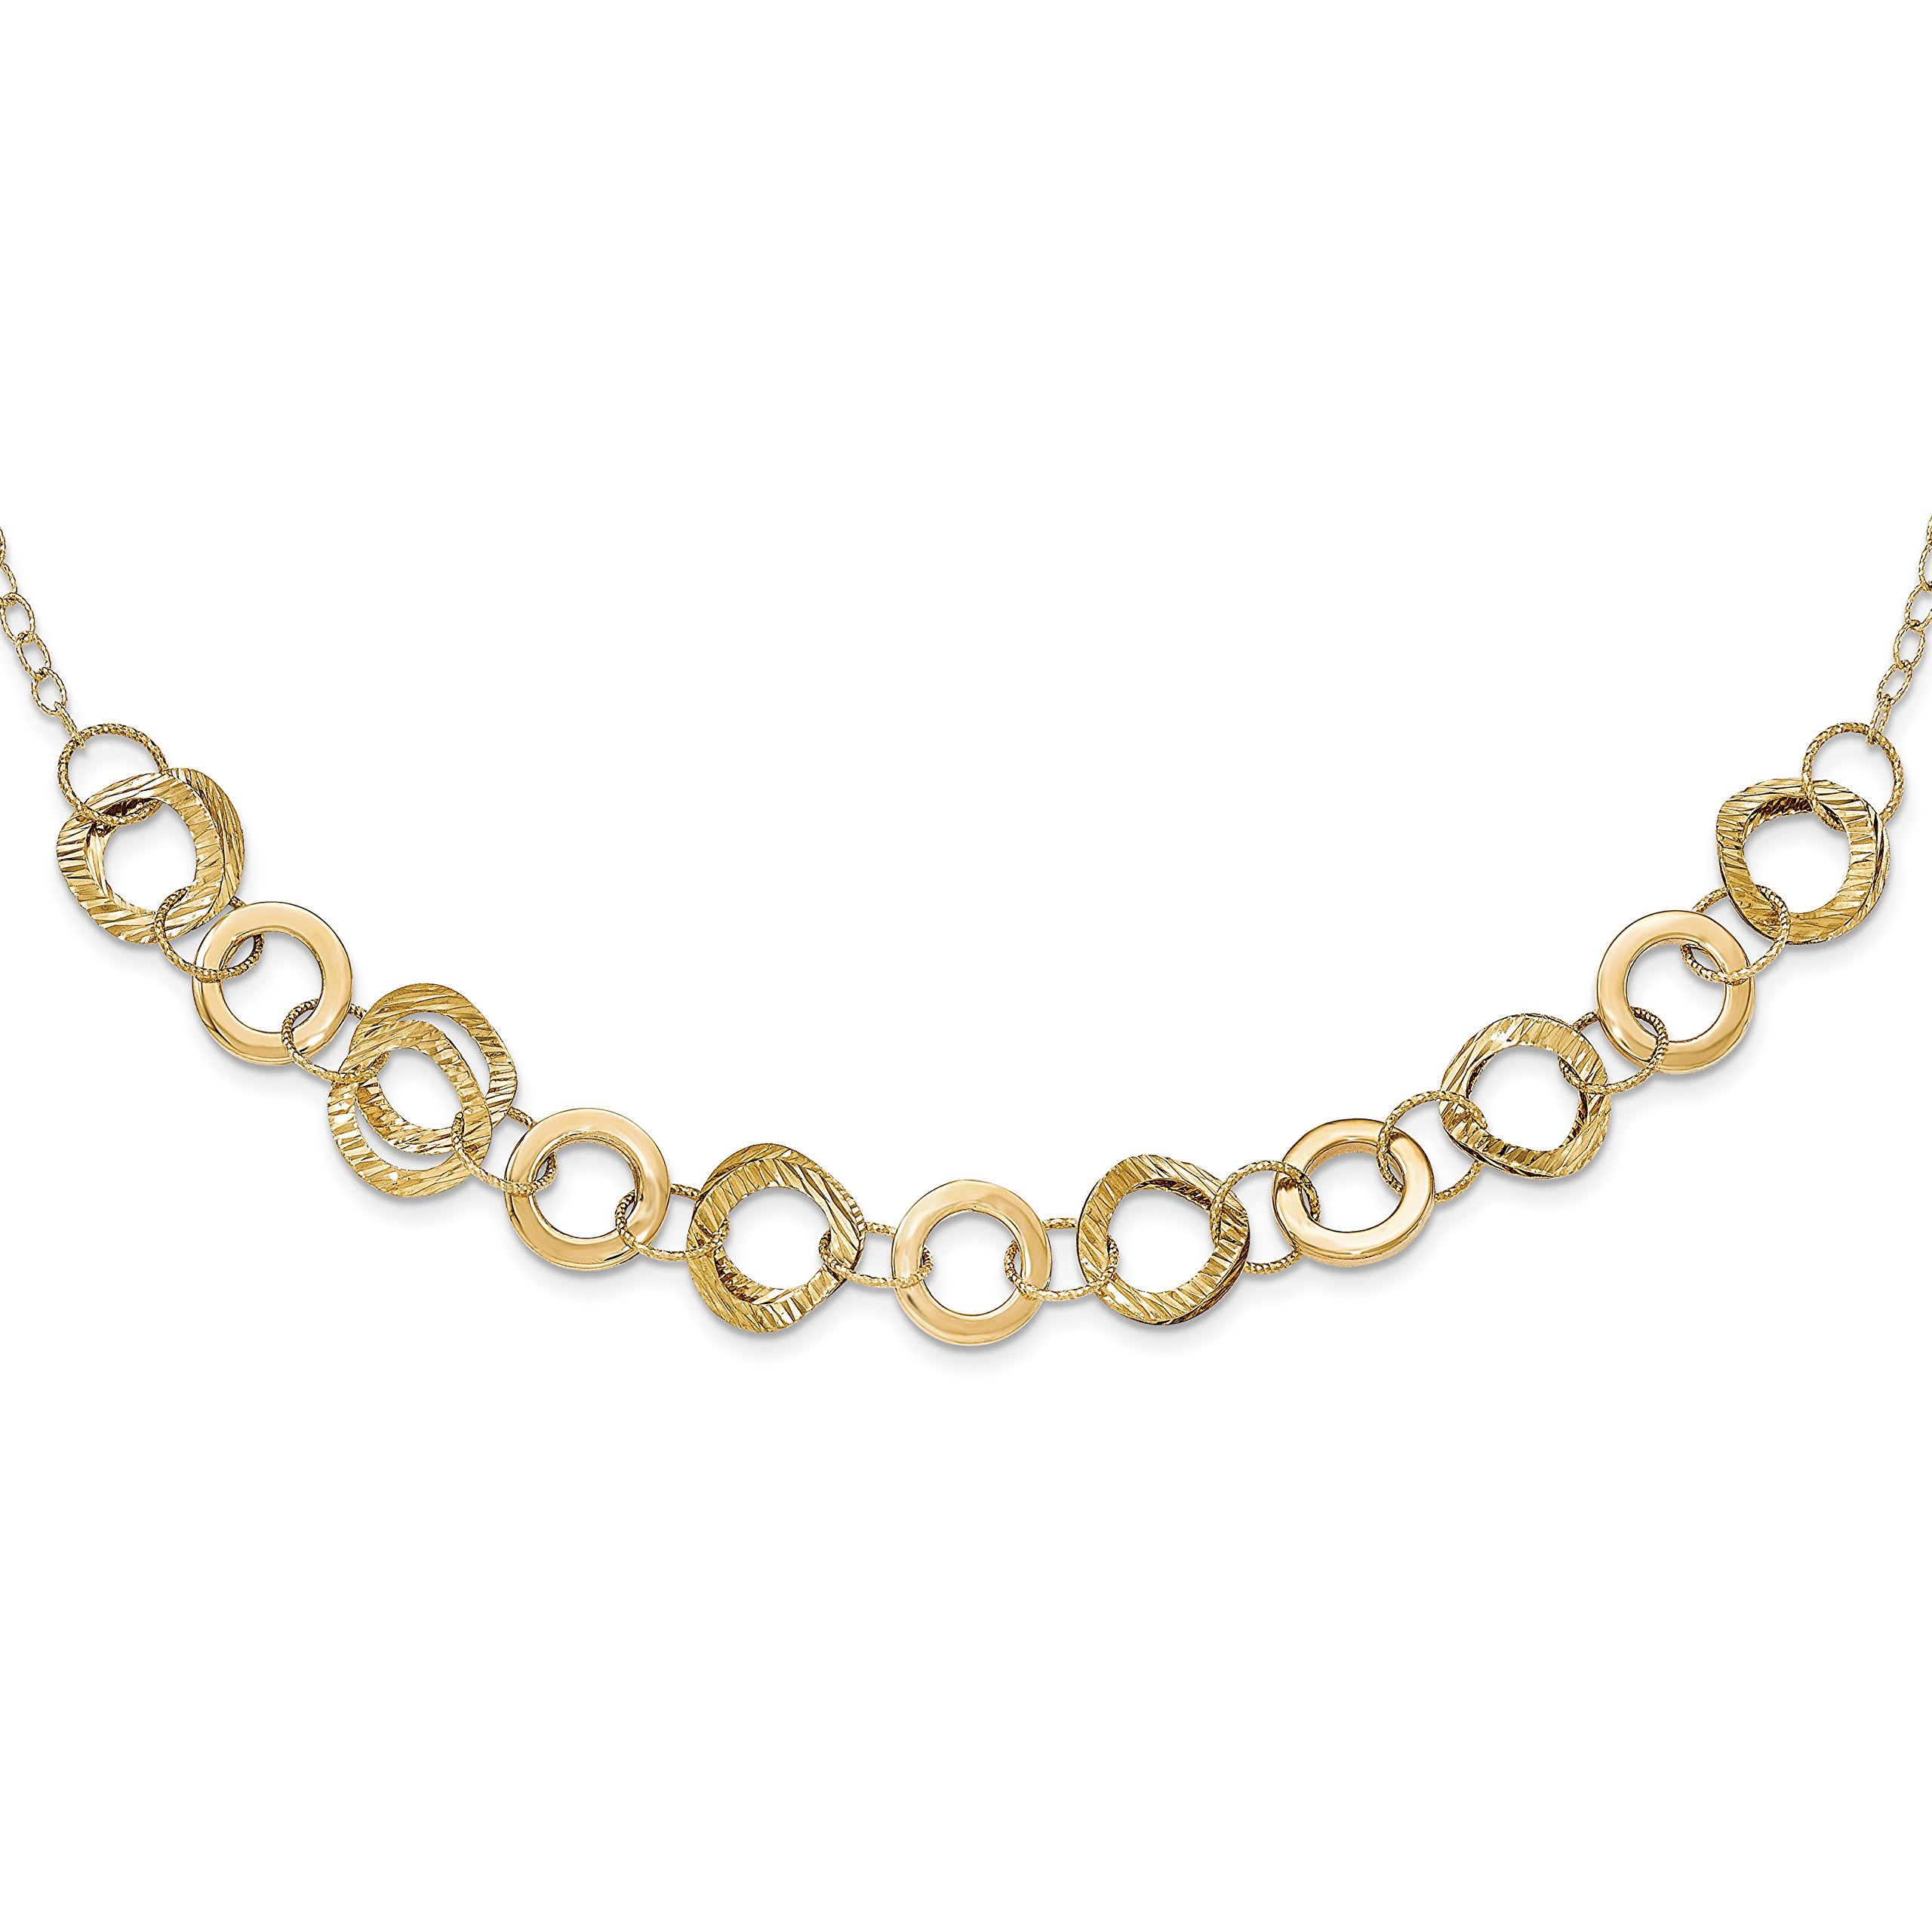 ICE CARATS 14k Yellow Gold / Link/open Cuban Link Chain Necklace H Fine Jewelry Gift Set For Women Heart